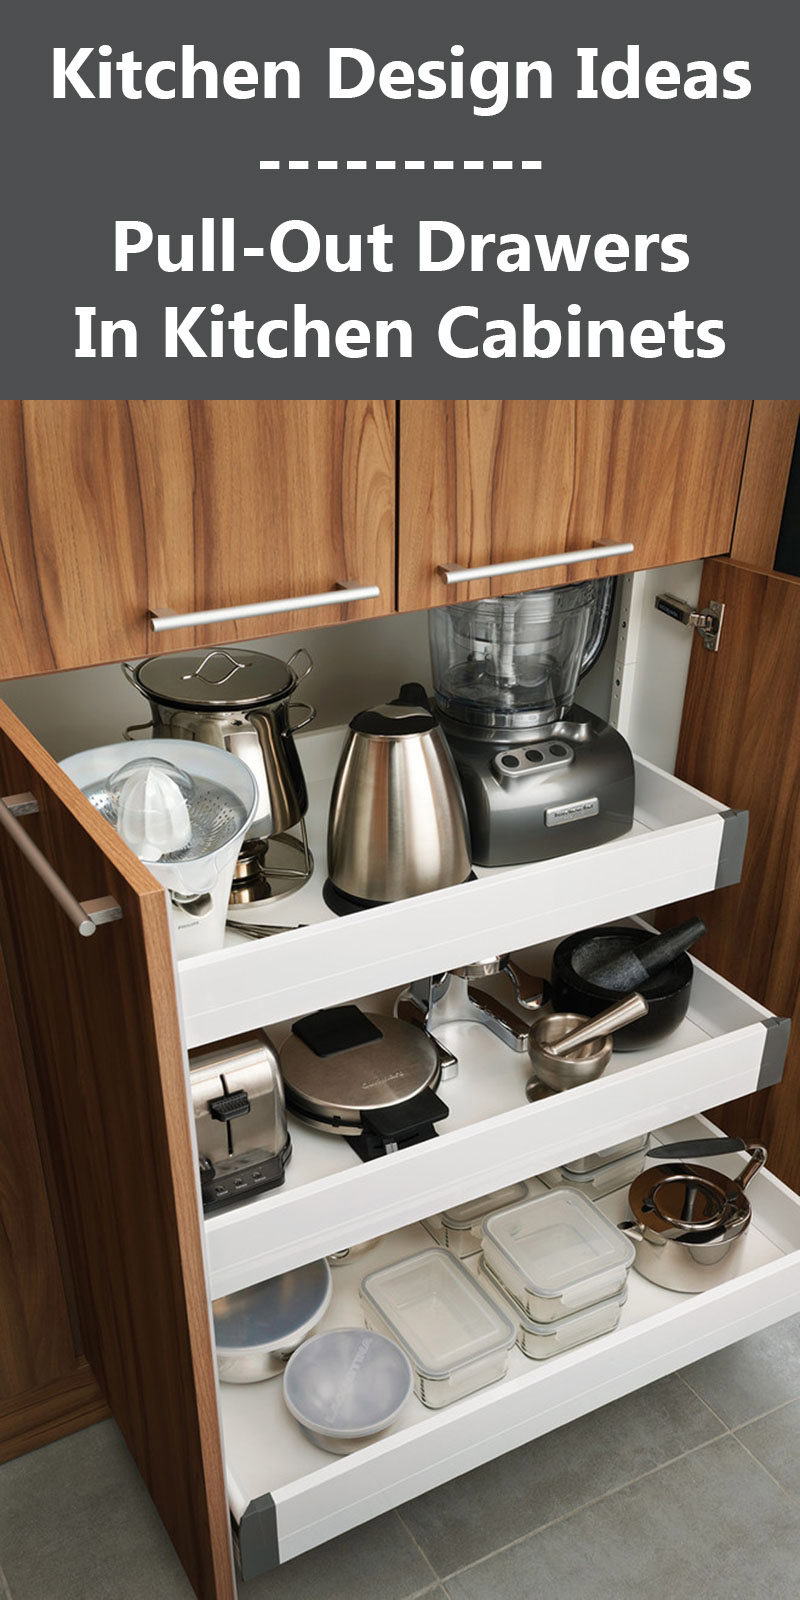 Kitchen Design Ideas - Pull-Out Drawers In Kitchen Cabinets